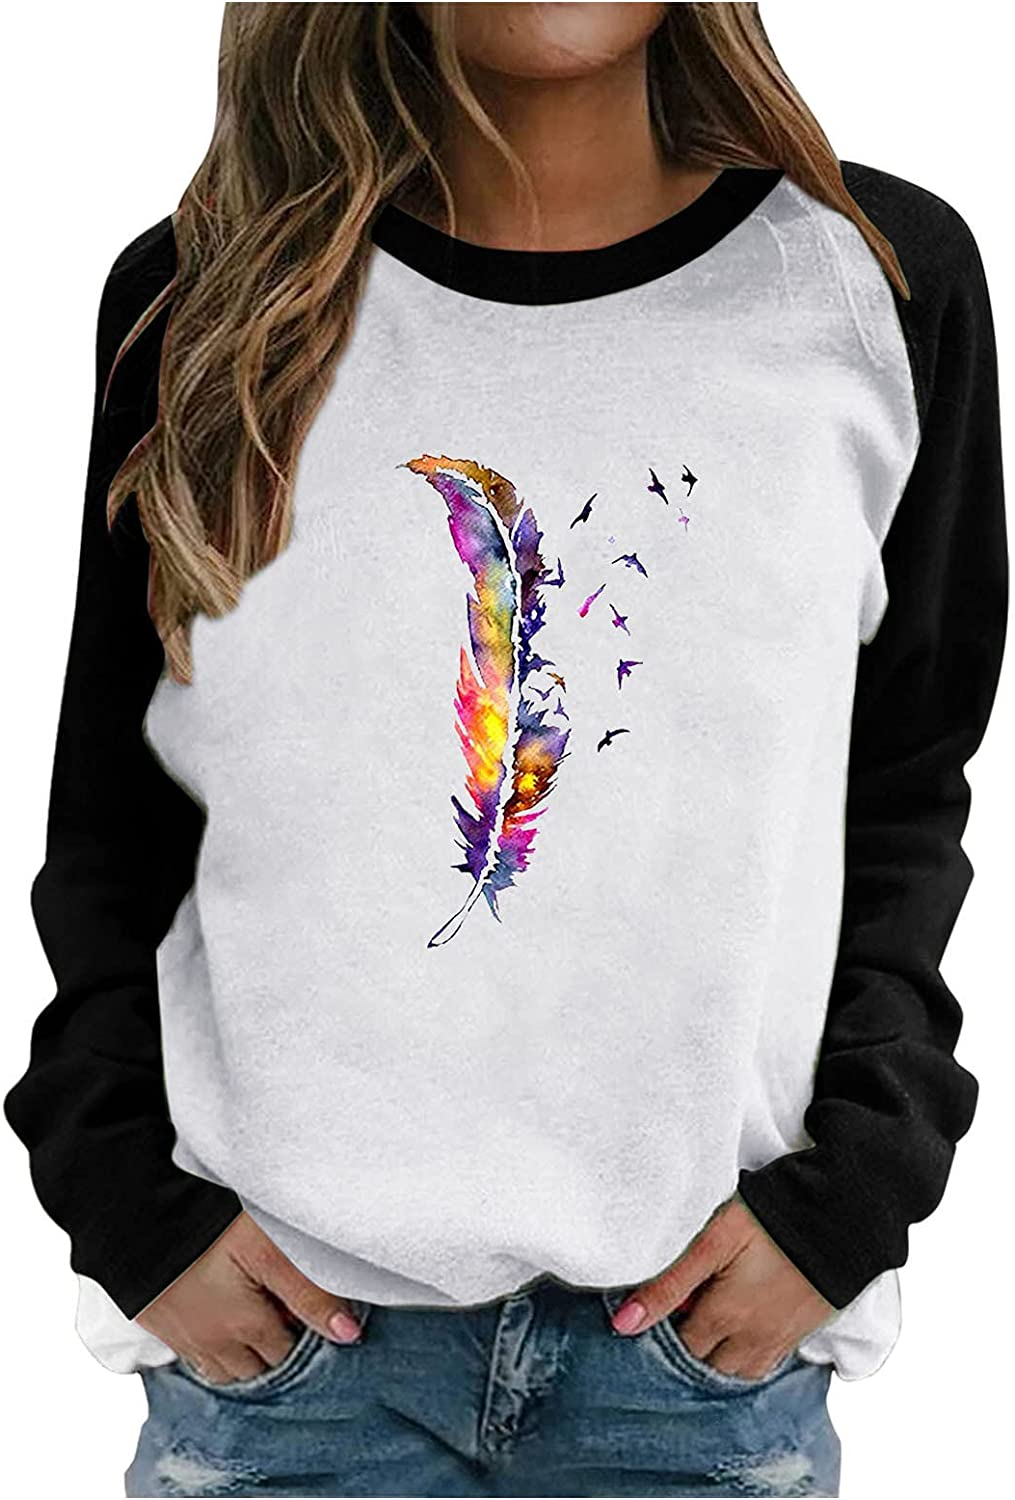 Feather Graphic Long Sleeve Tees for Women Splicing Raglan Sleeve Casual Tops Loose Fit Retro Blouse Trendy Pullover